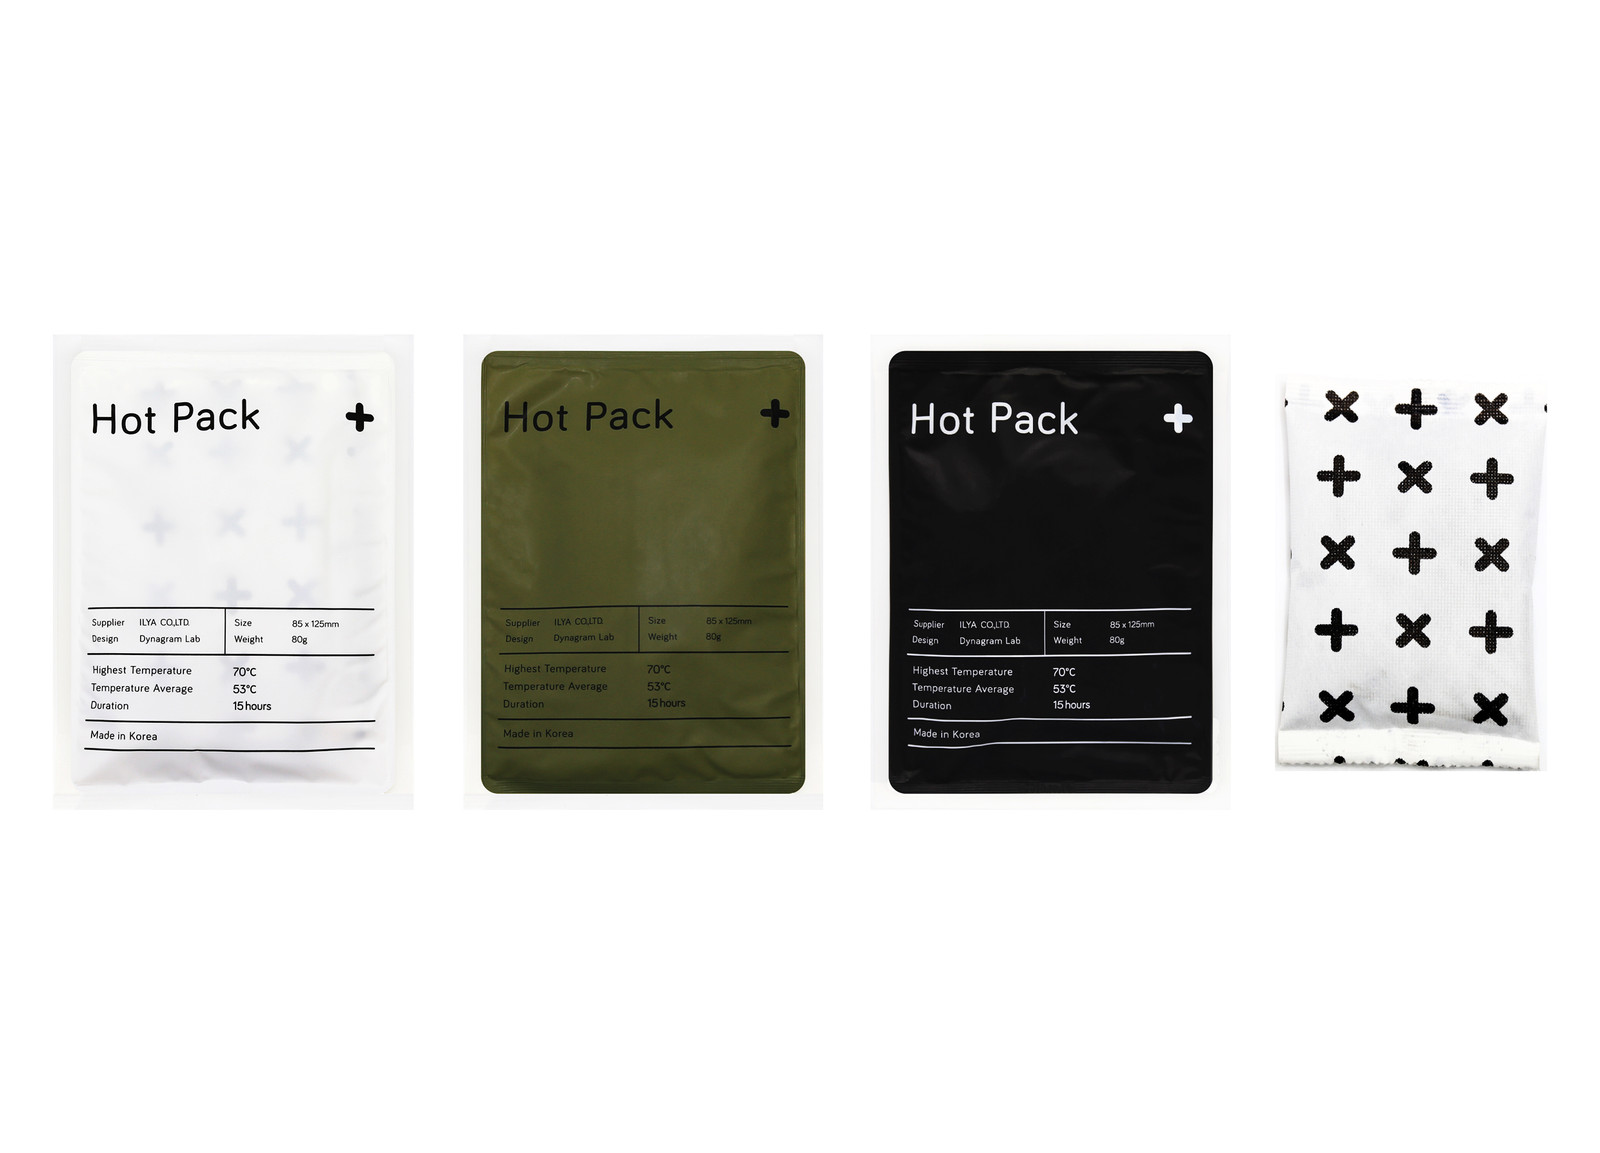 Three types of hot packs have been released